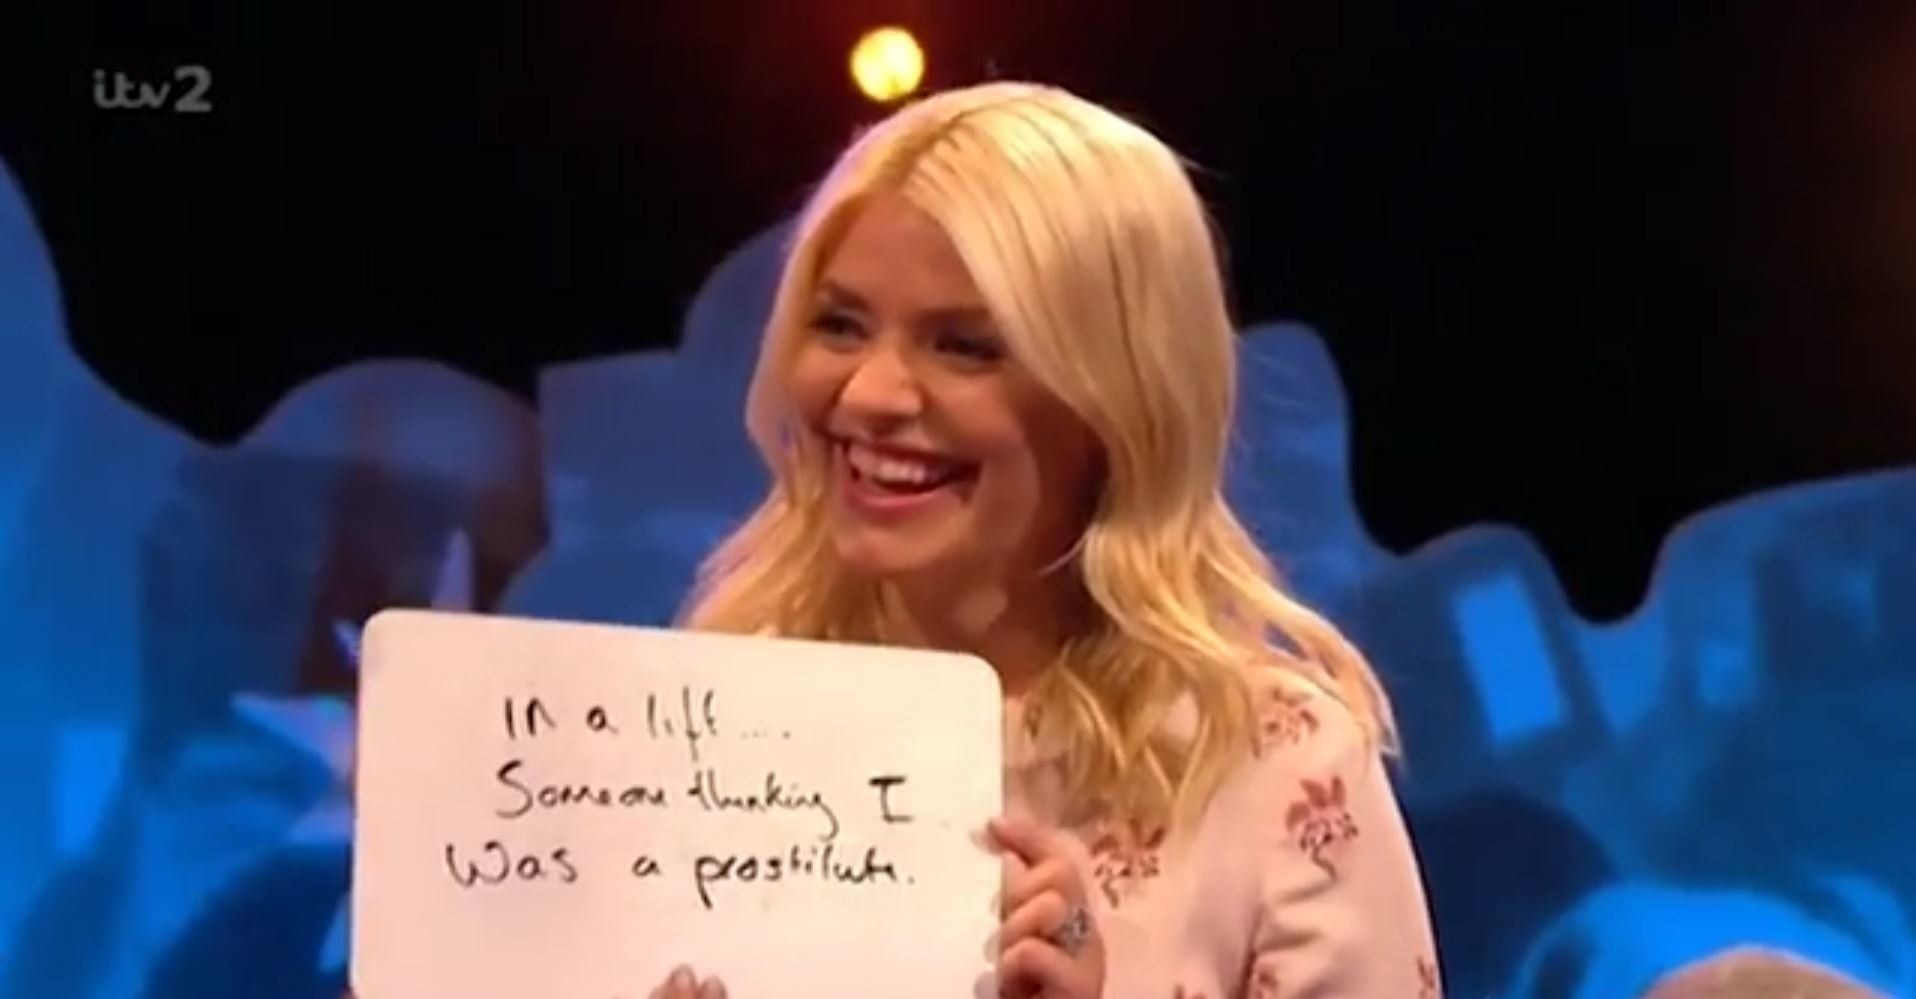 Holly Willoughby Reveals She Was Mistaken For Sex Worker During Drunken Night